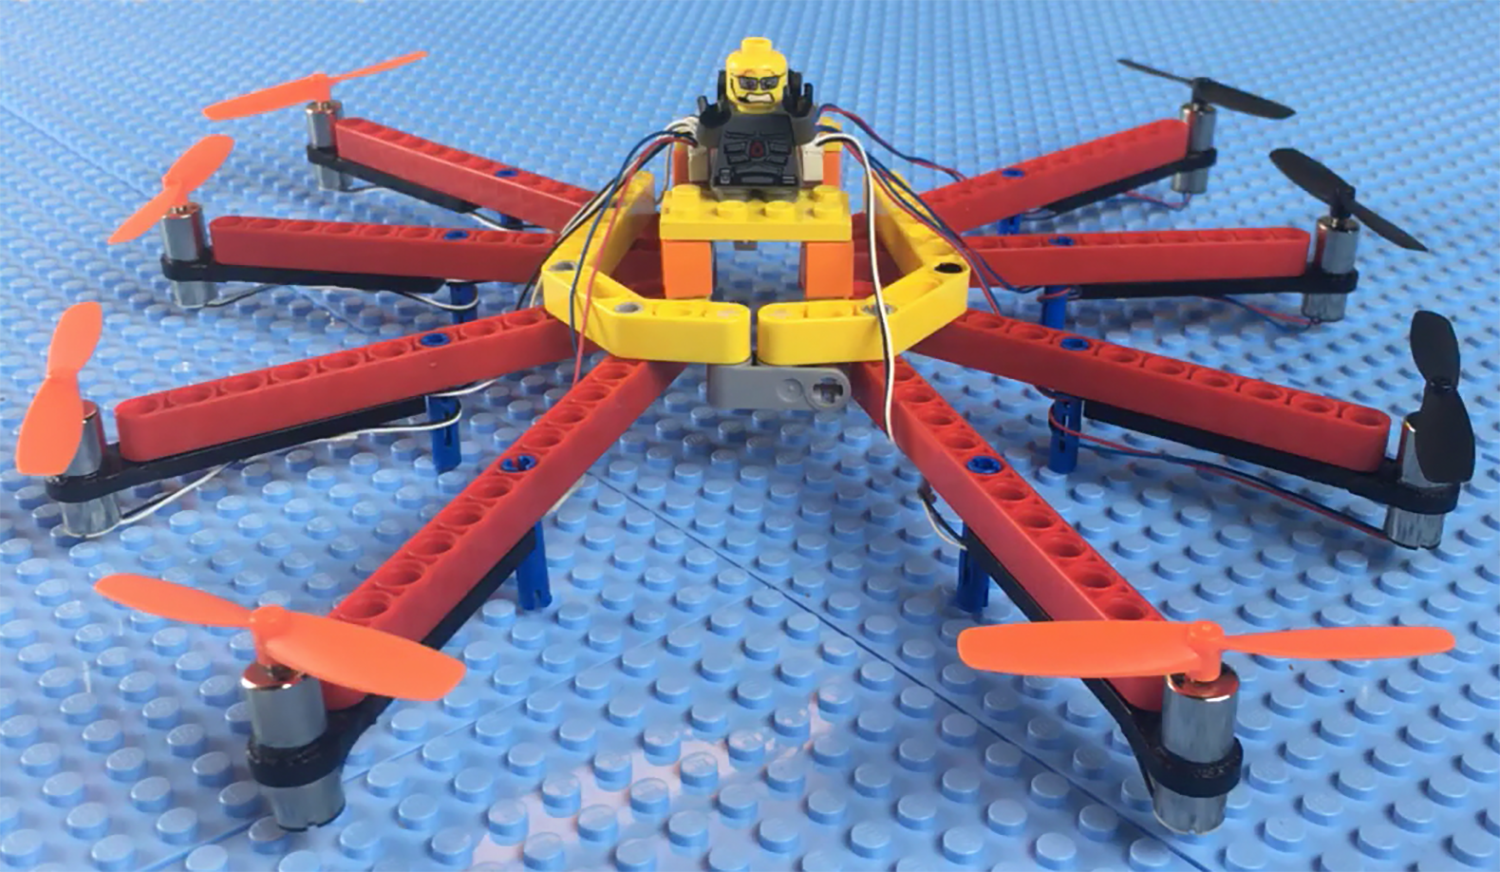 Flybrix teaches kids how to build and fly drones with Legos